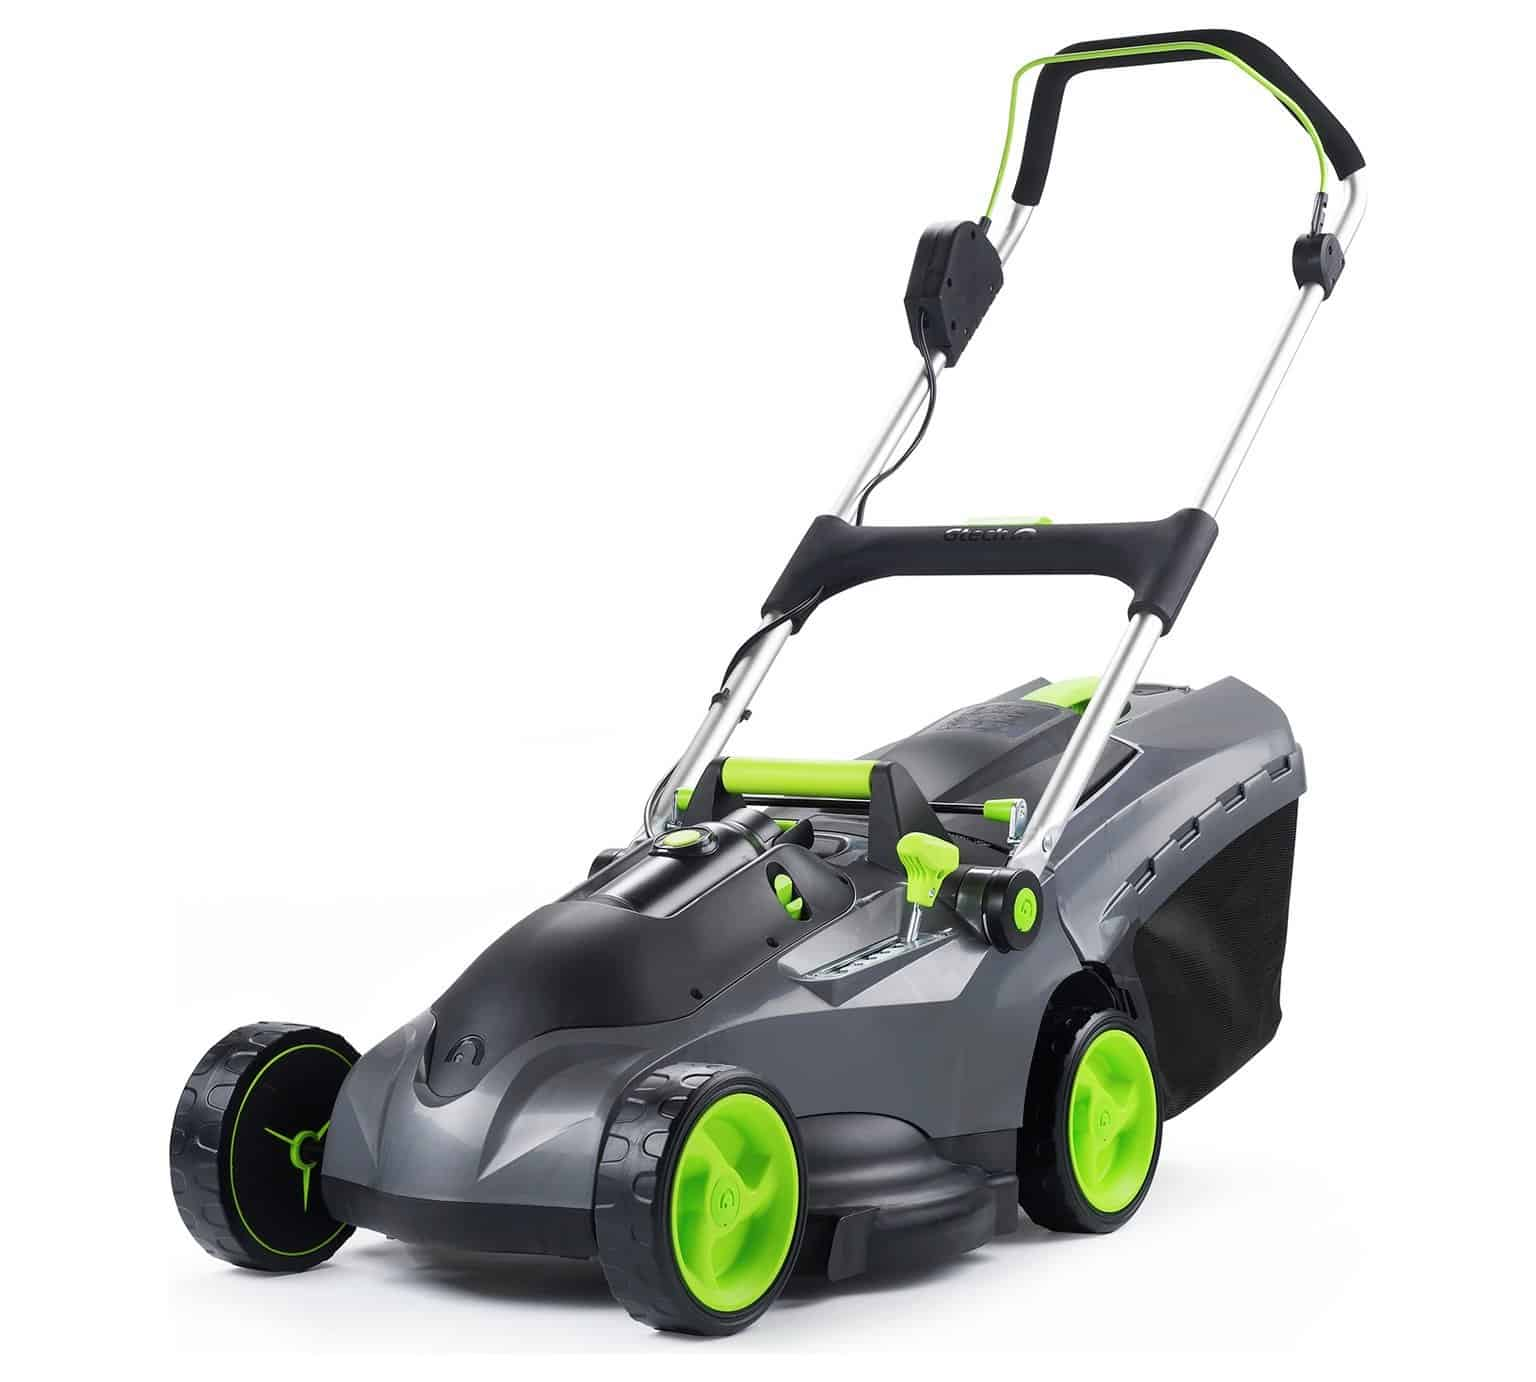 Gtech Lawnmower